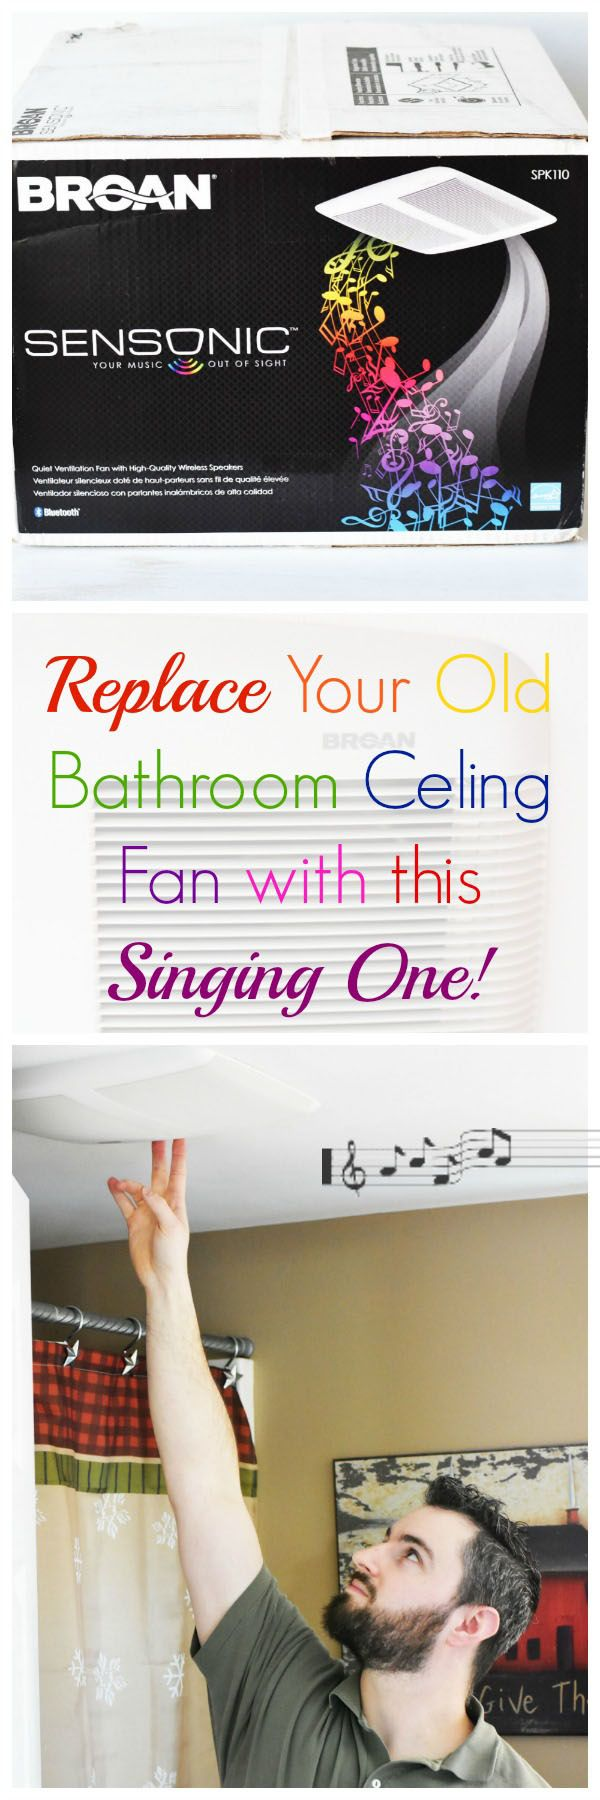 Luxury How to Replace a Bathroom Ventilation Fan with the Broan Sensonic Love Music but hate